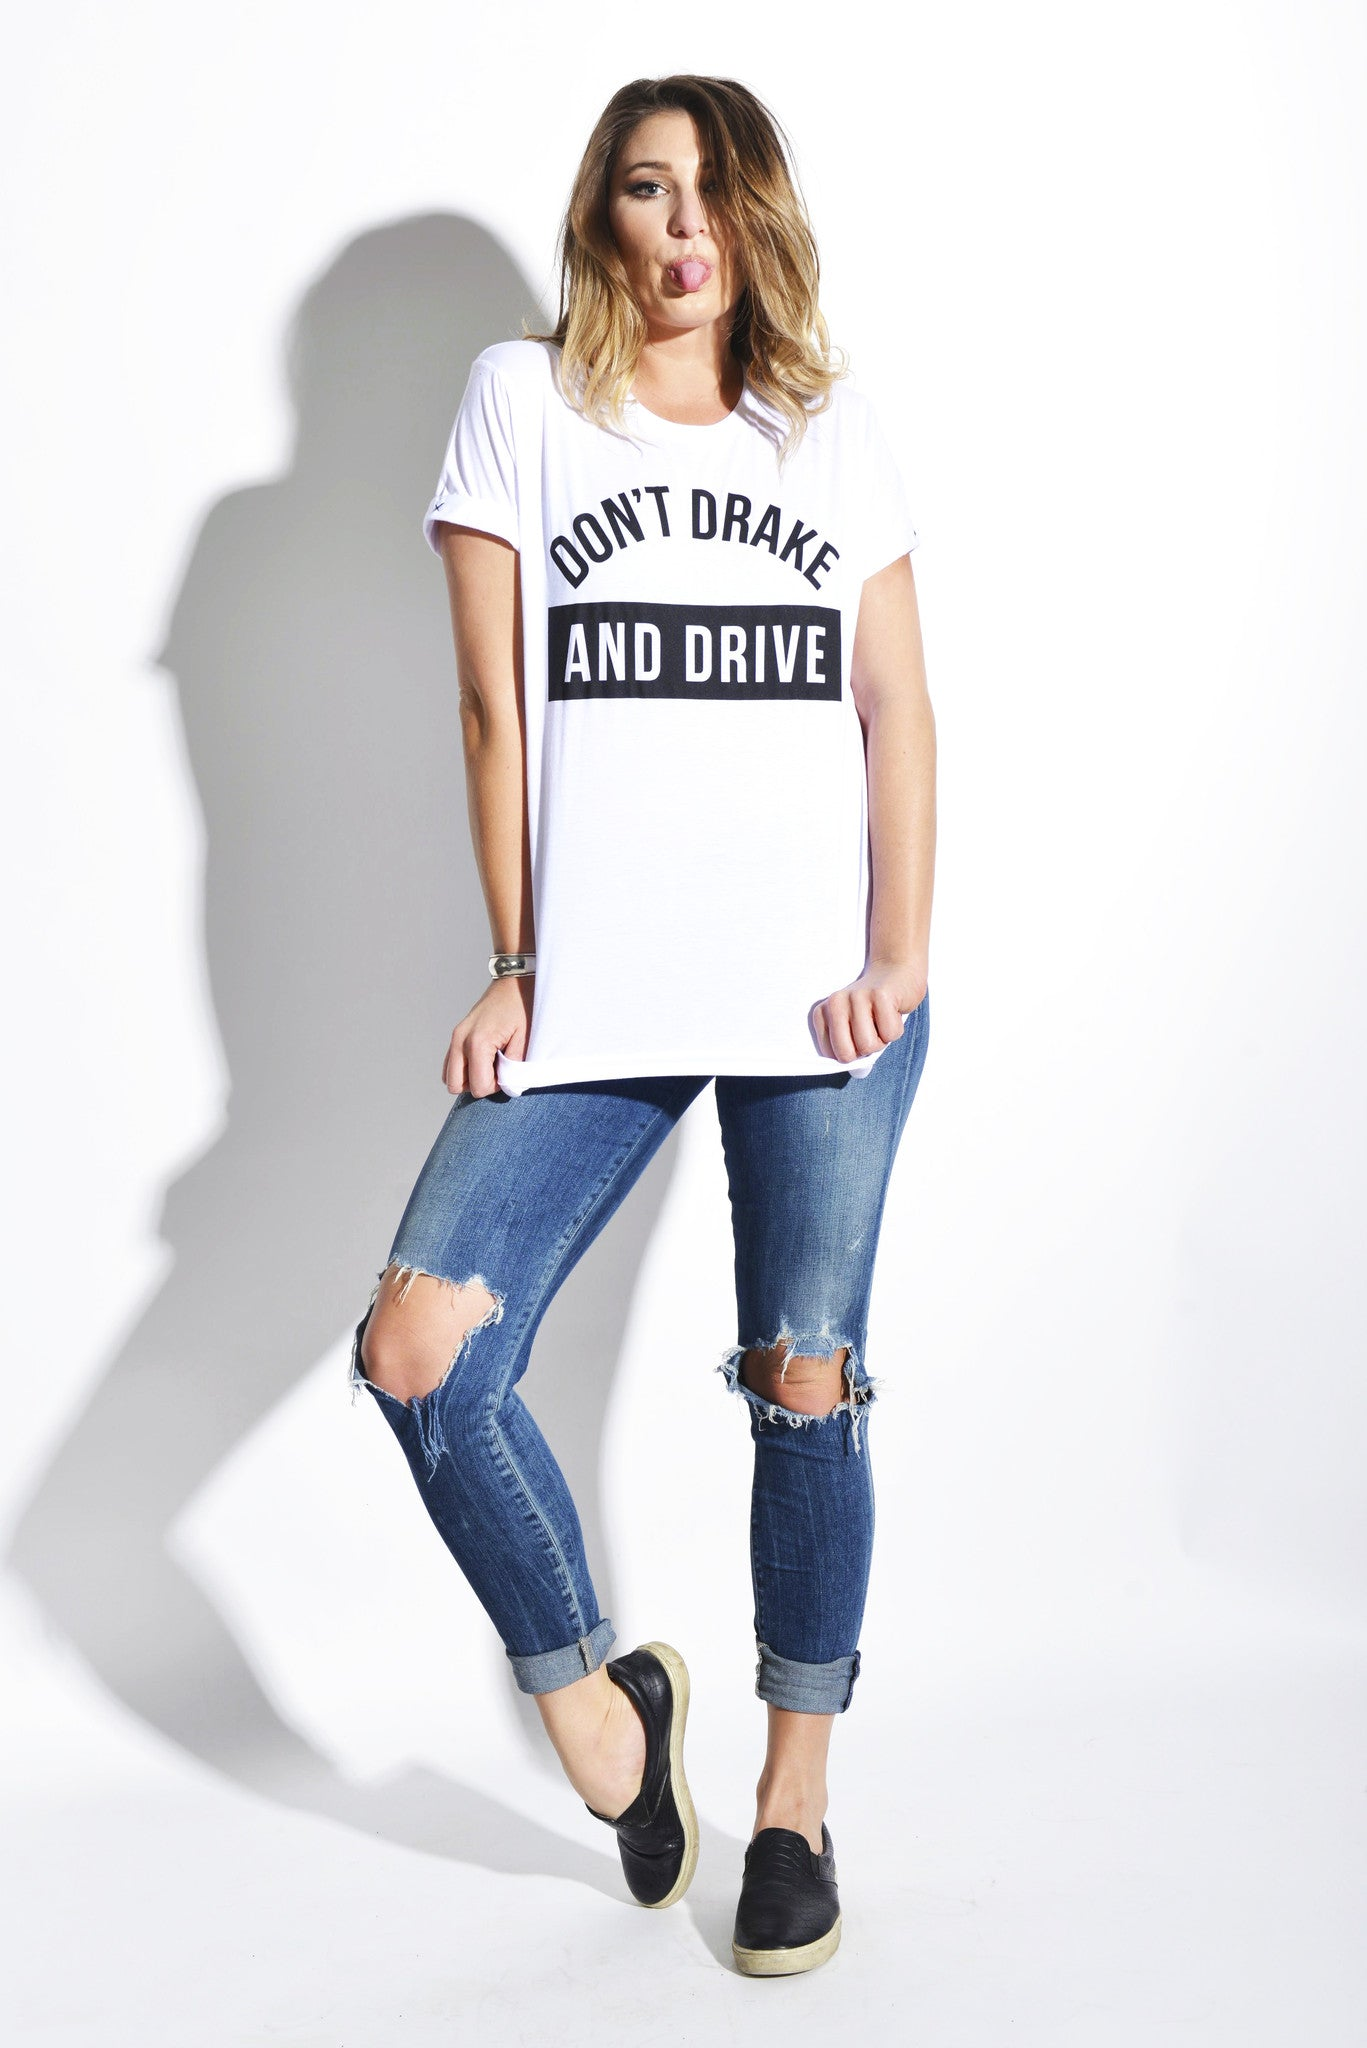 Don't Drake and Drive - White Unisex Tee